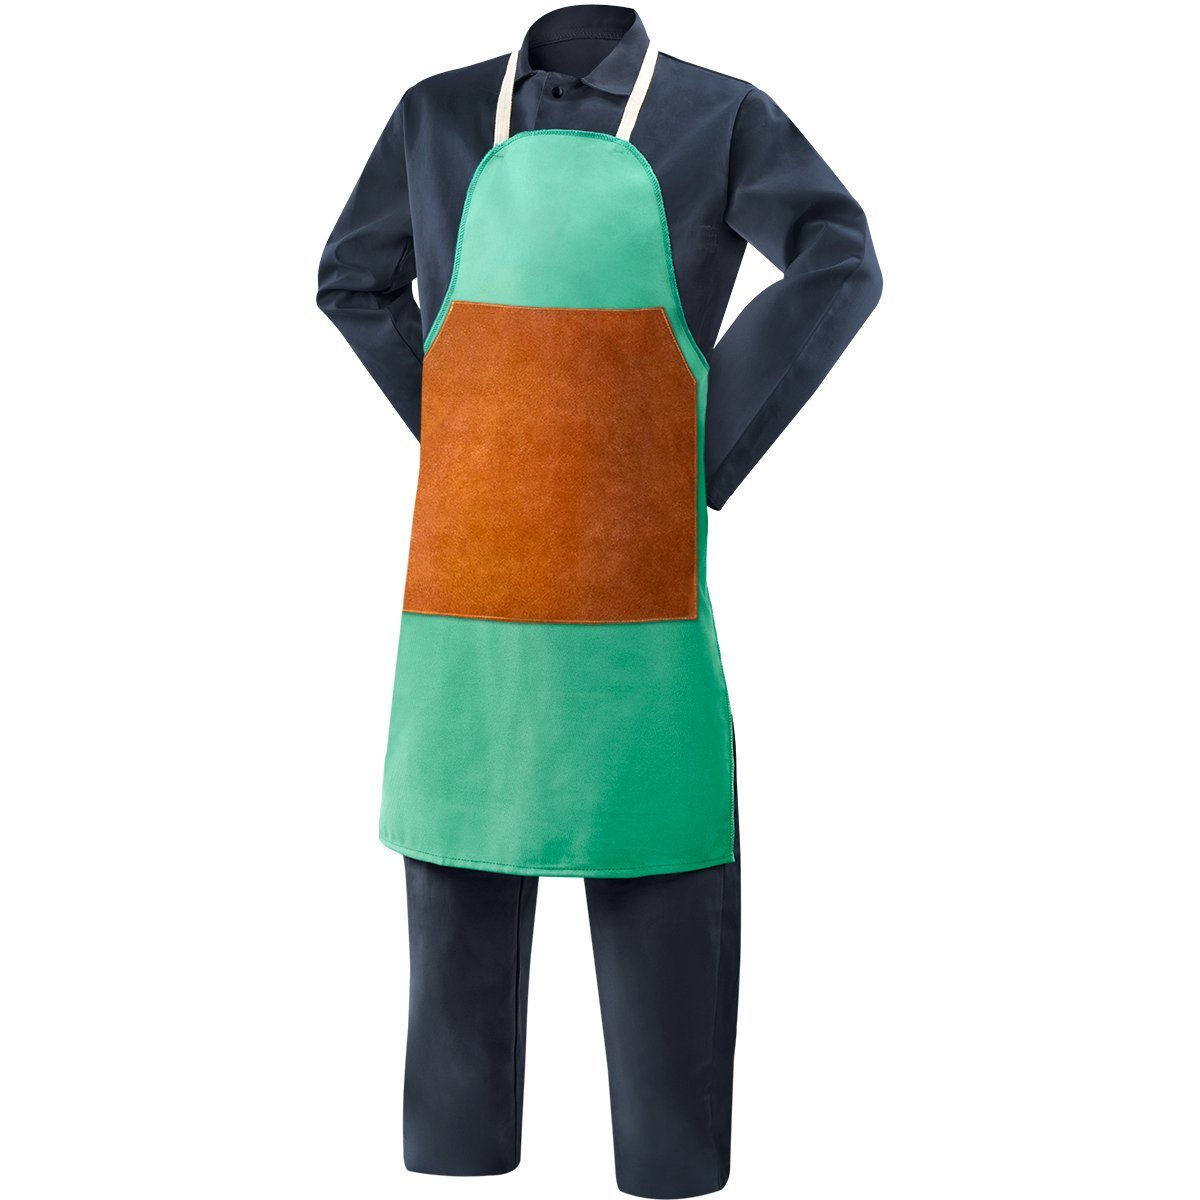 Steiner 10338 Bib Apron with Leather Patch, Green Flame Resistant 12-Ounce Cotton, 36-Inch